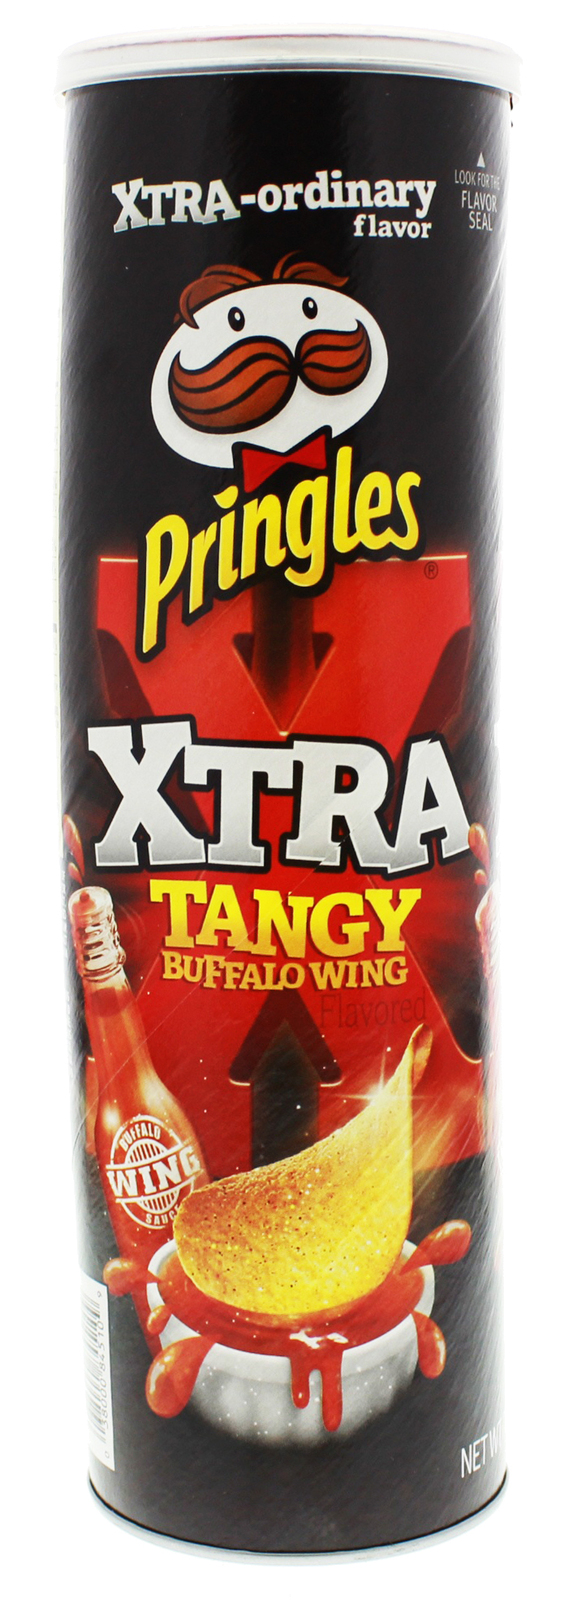 Pringles Xtra Tangy Buffalo Wing flavour 158g image